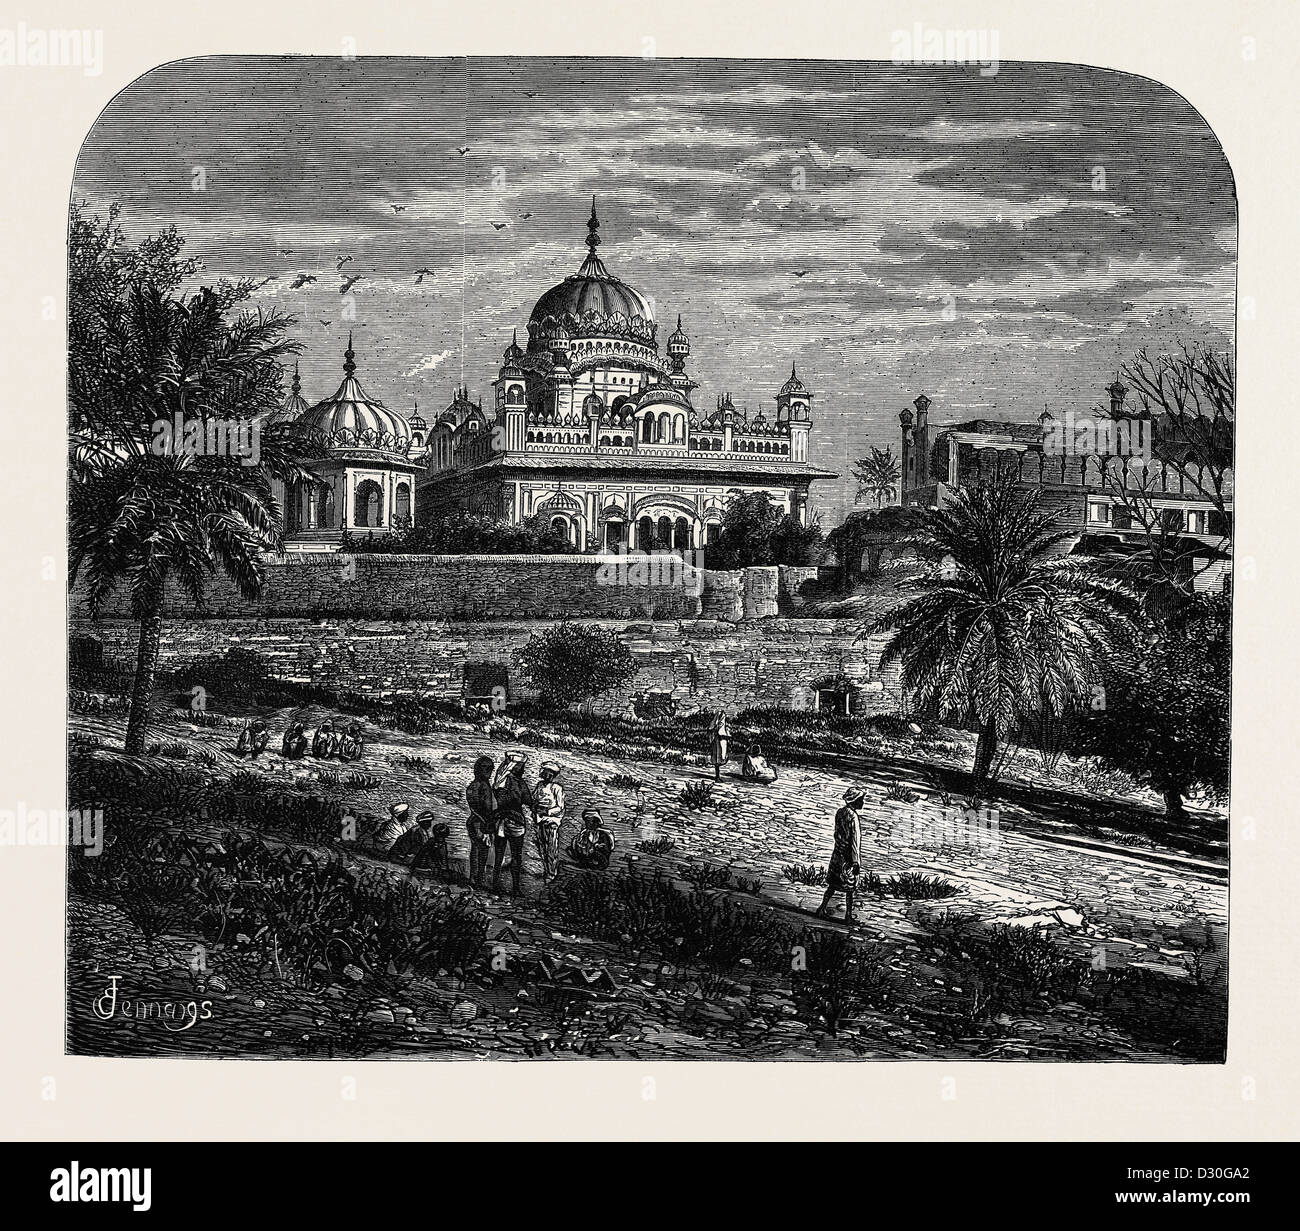 INDIAN SKETCHES: THE TOMB OF RUNJEET SINGH, FOUNDER OF THE SIKH EMPIRE - Stock Image